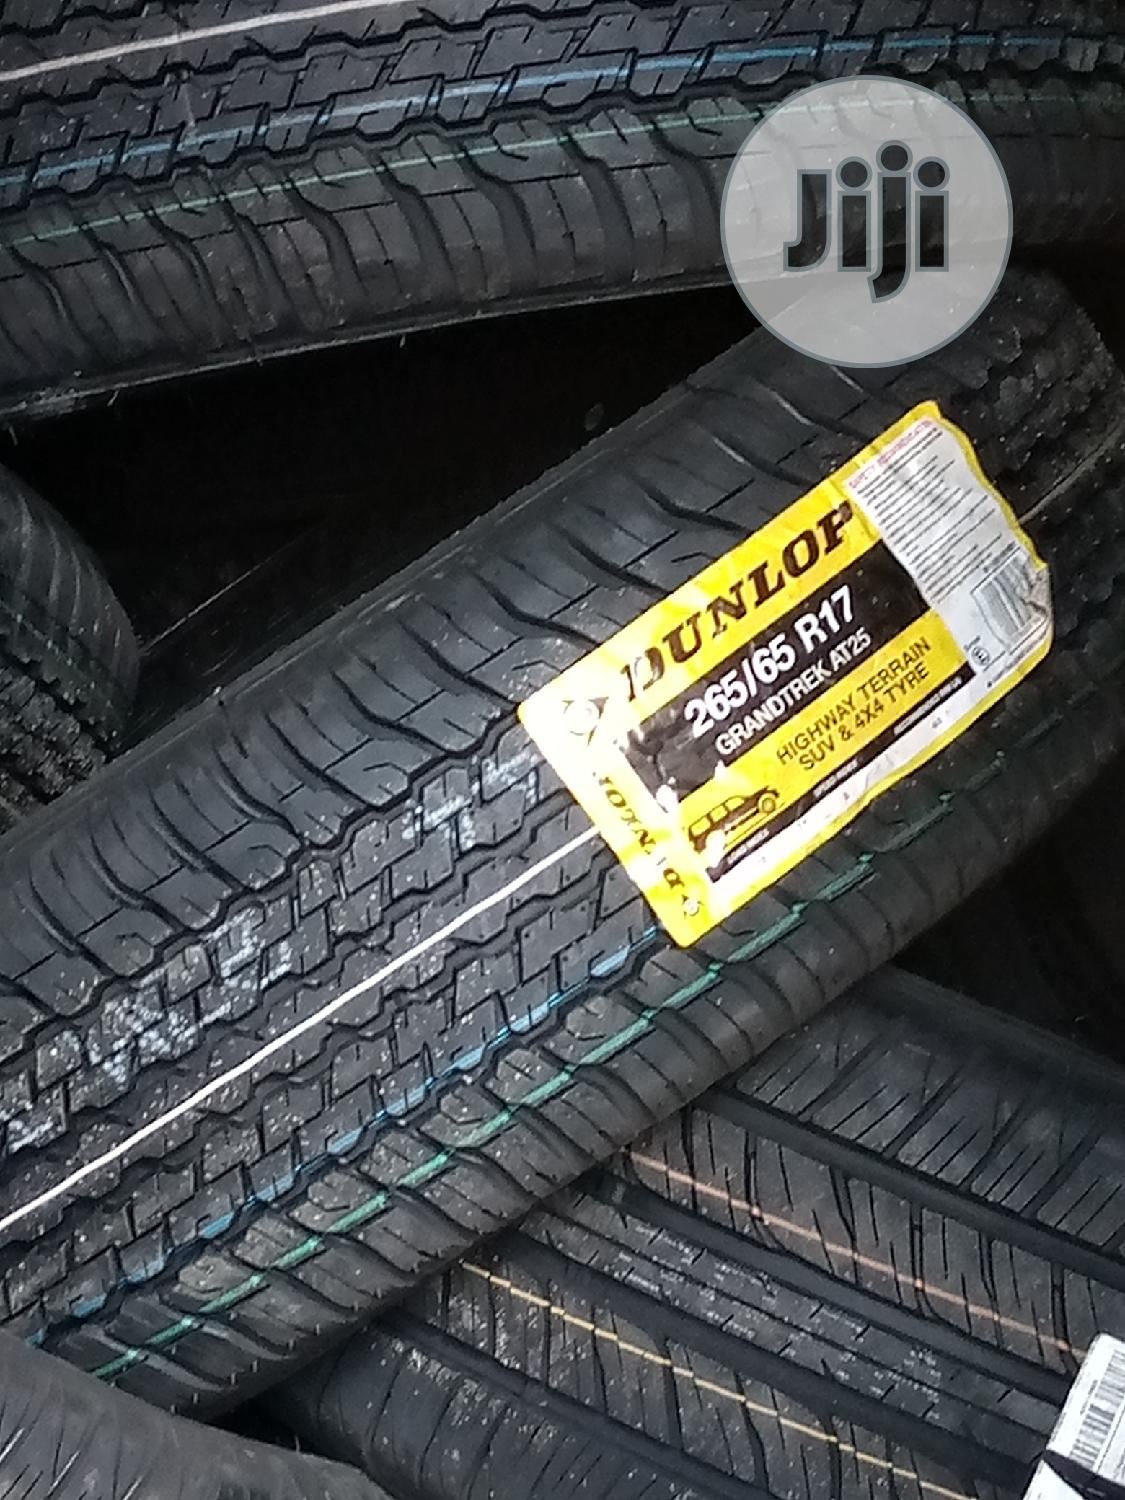 265/65/17 Dunlop Car Tire and Jeep